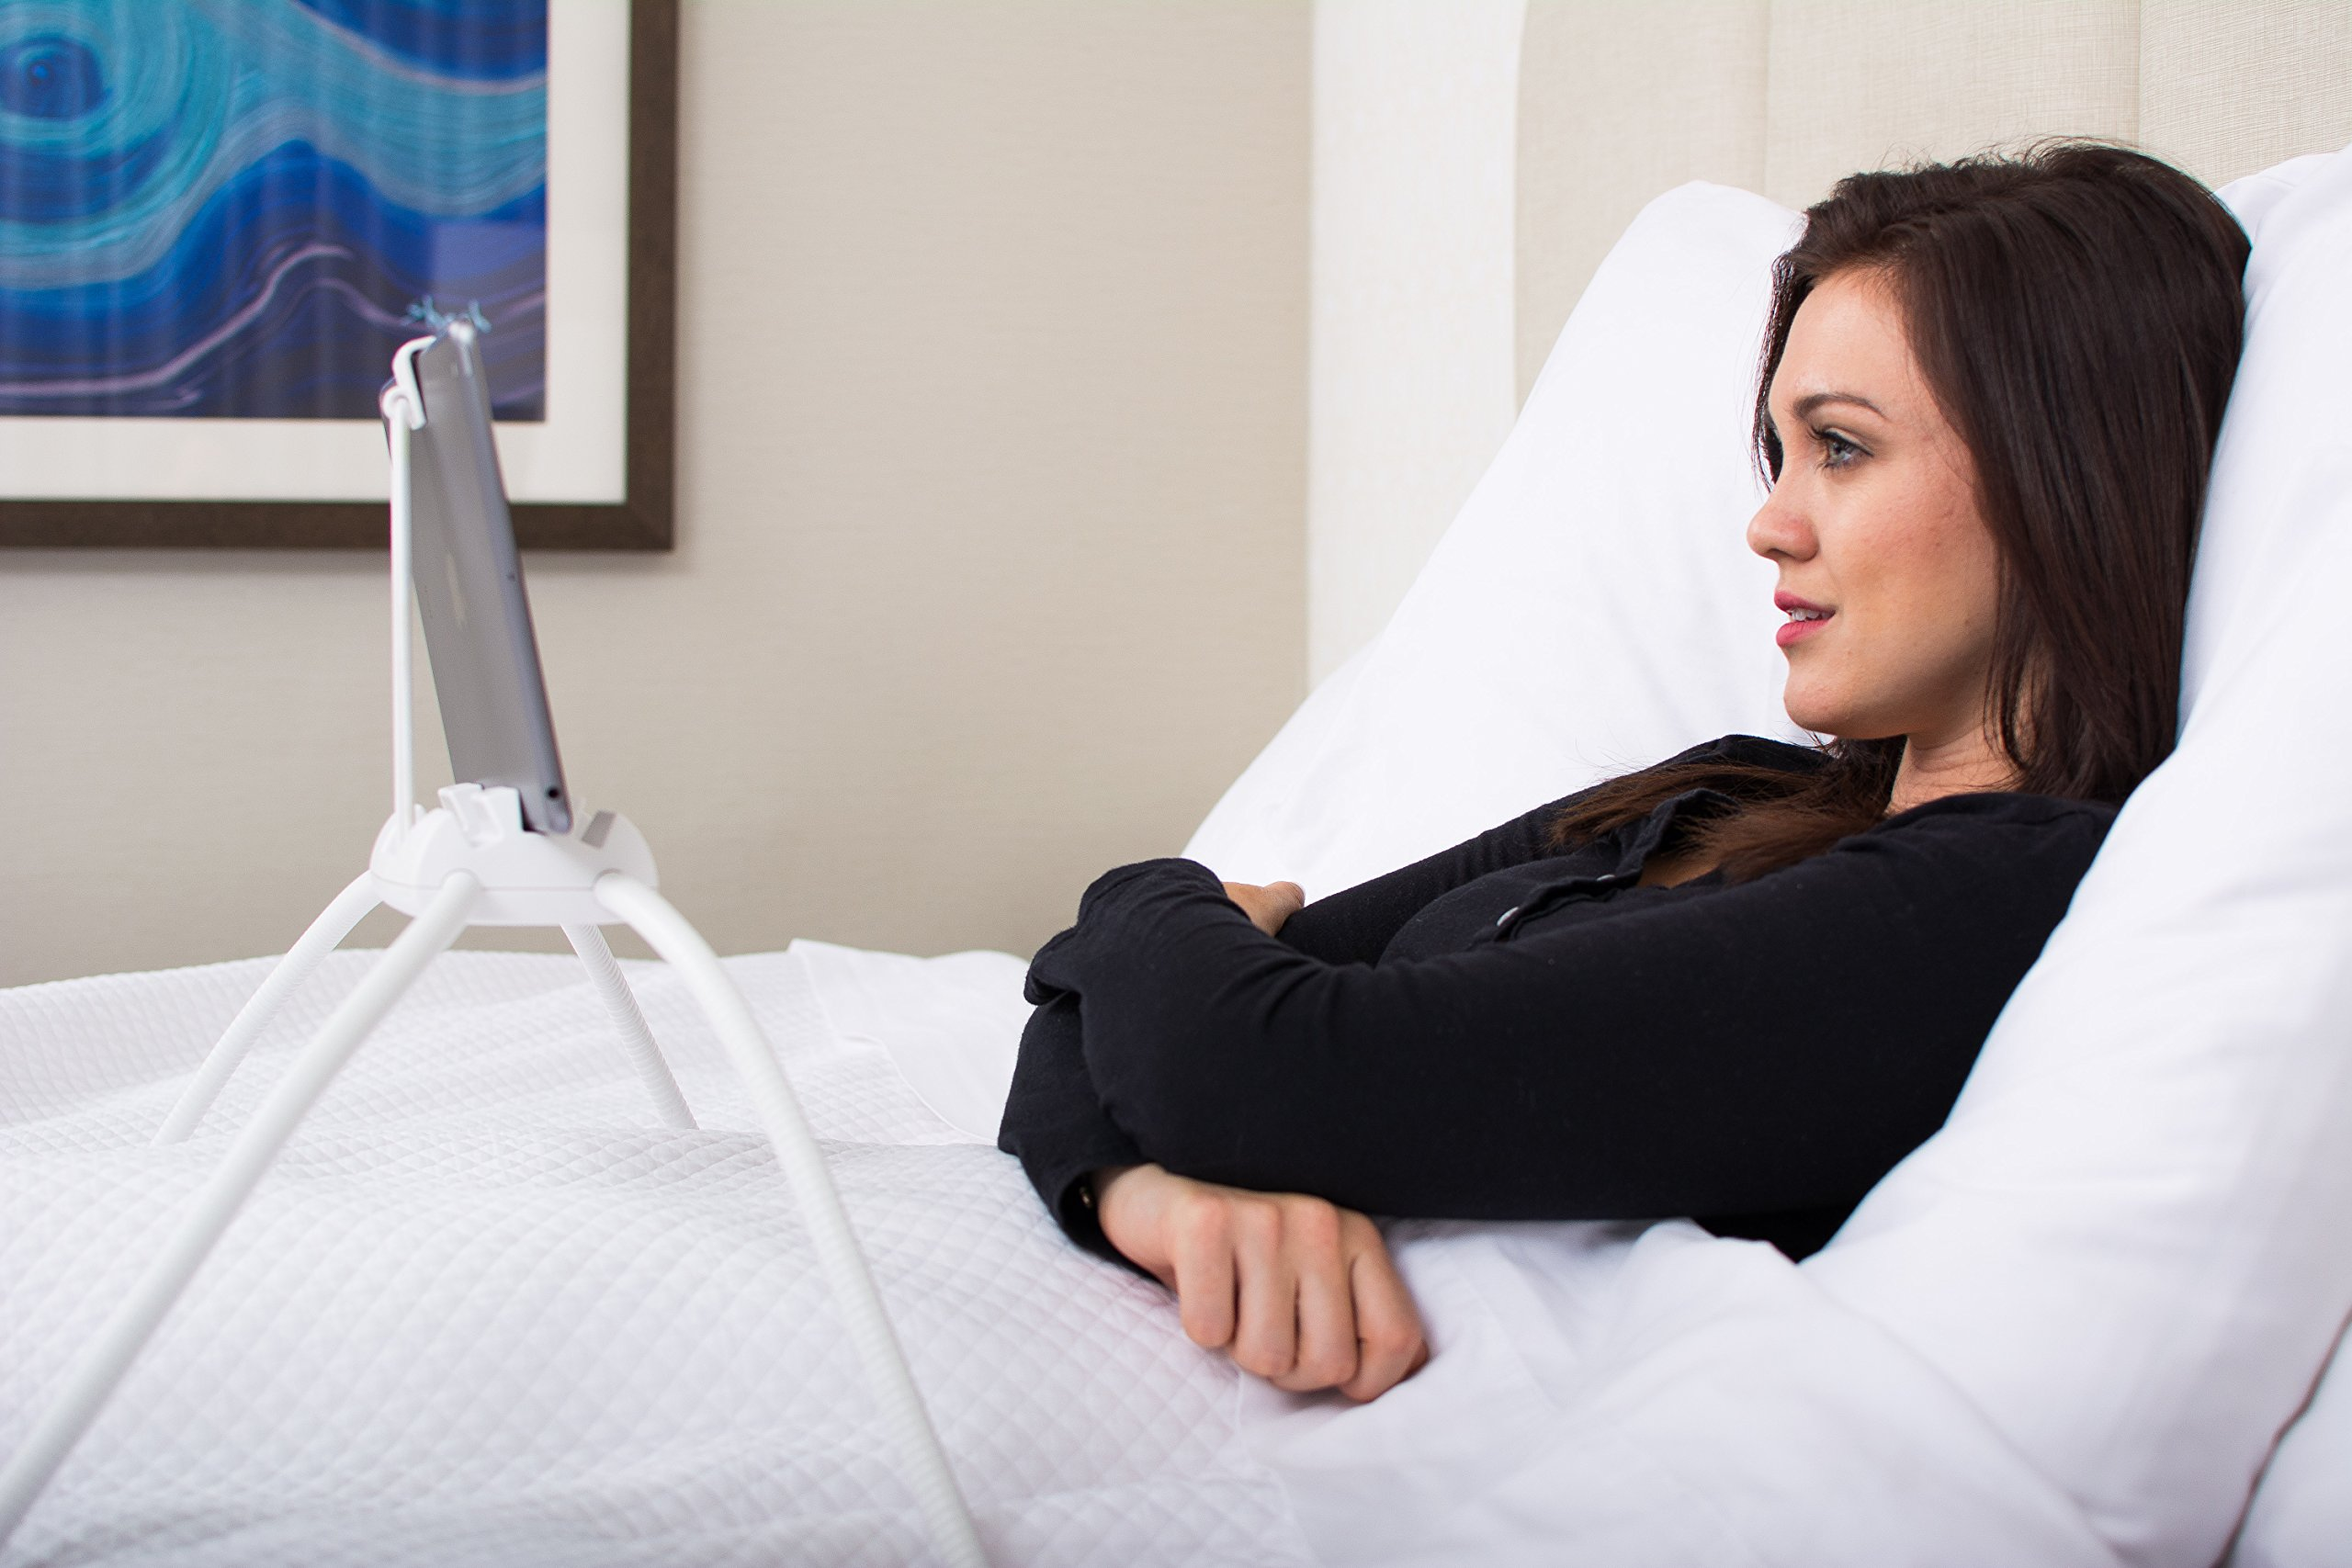 Tablift Tablet Stand (in White) for the Bed, Sofa, or Any Uneven Surface by nbryte (Image #3)